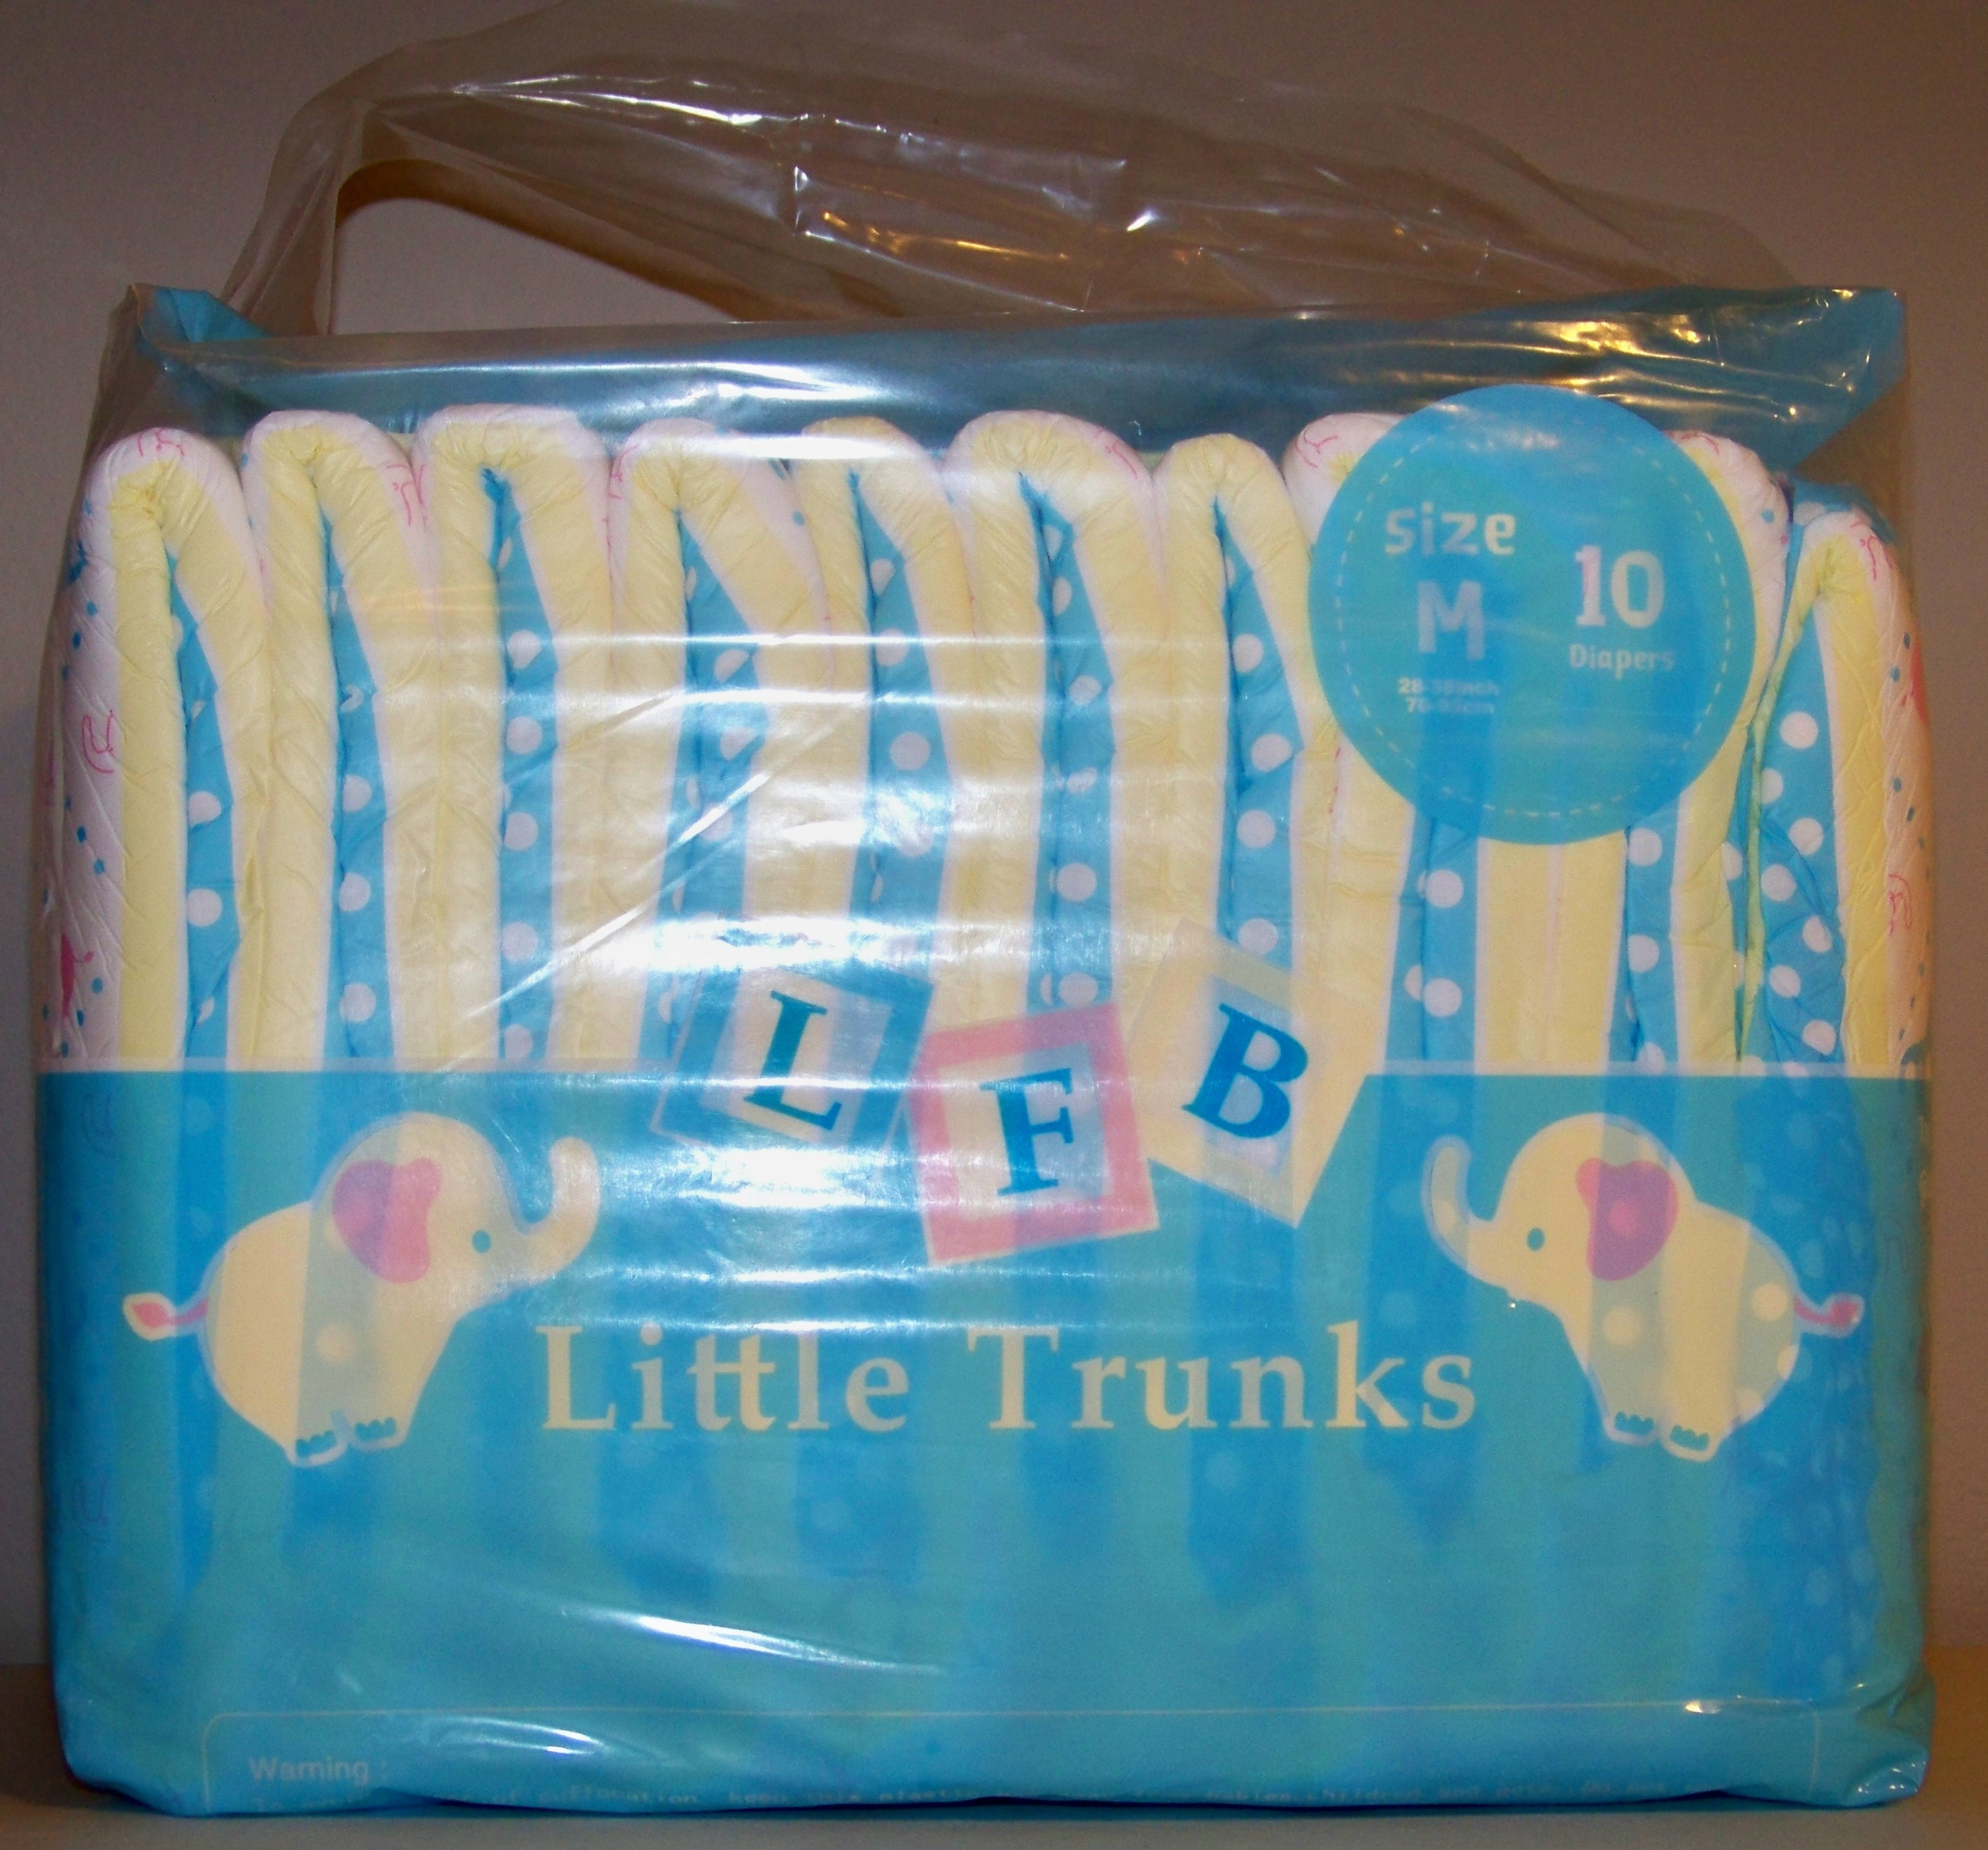 Littleforbig little trunks advanced diaper review its an elegant and professional print with elephants baby blocks spelling out lfb and social media symbols on the side biocorpaavc Images